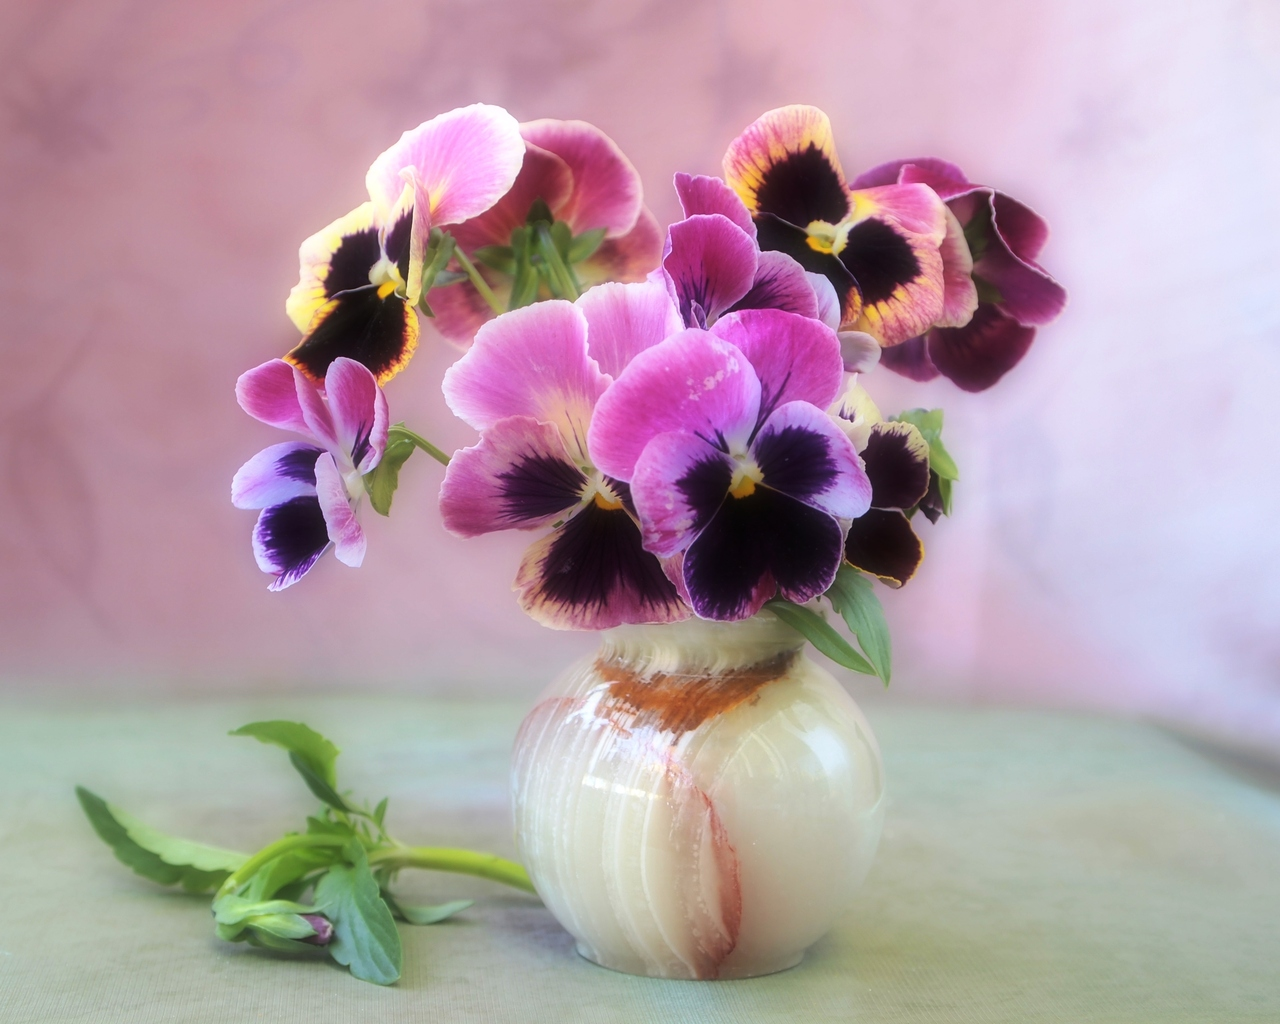 Pansies in Vase